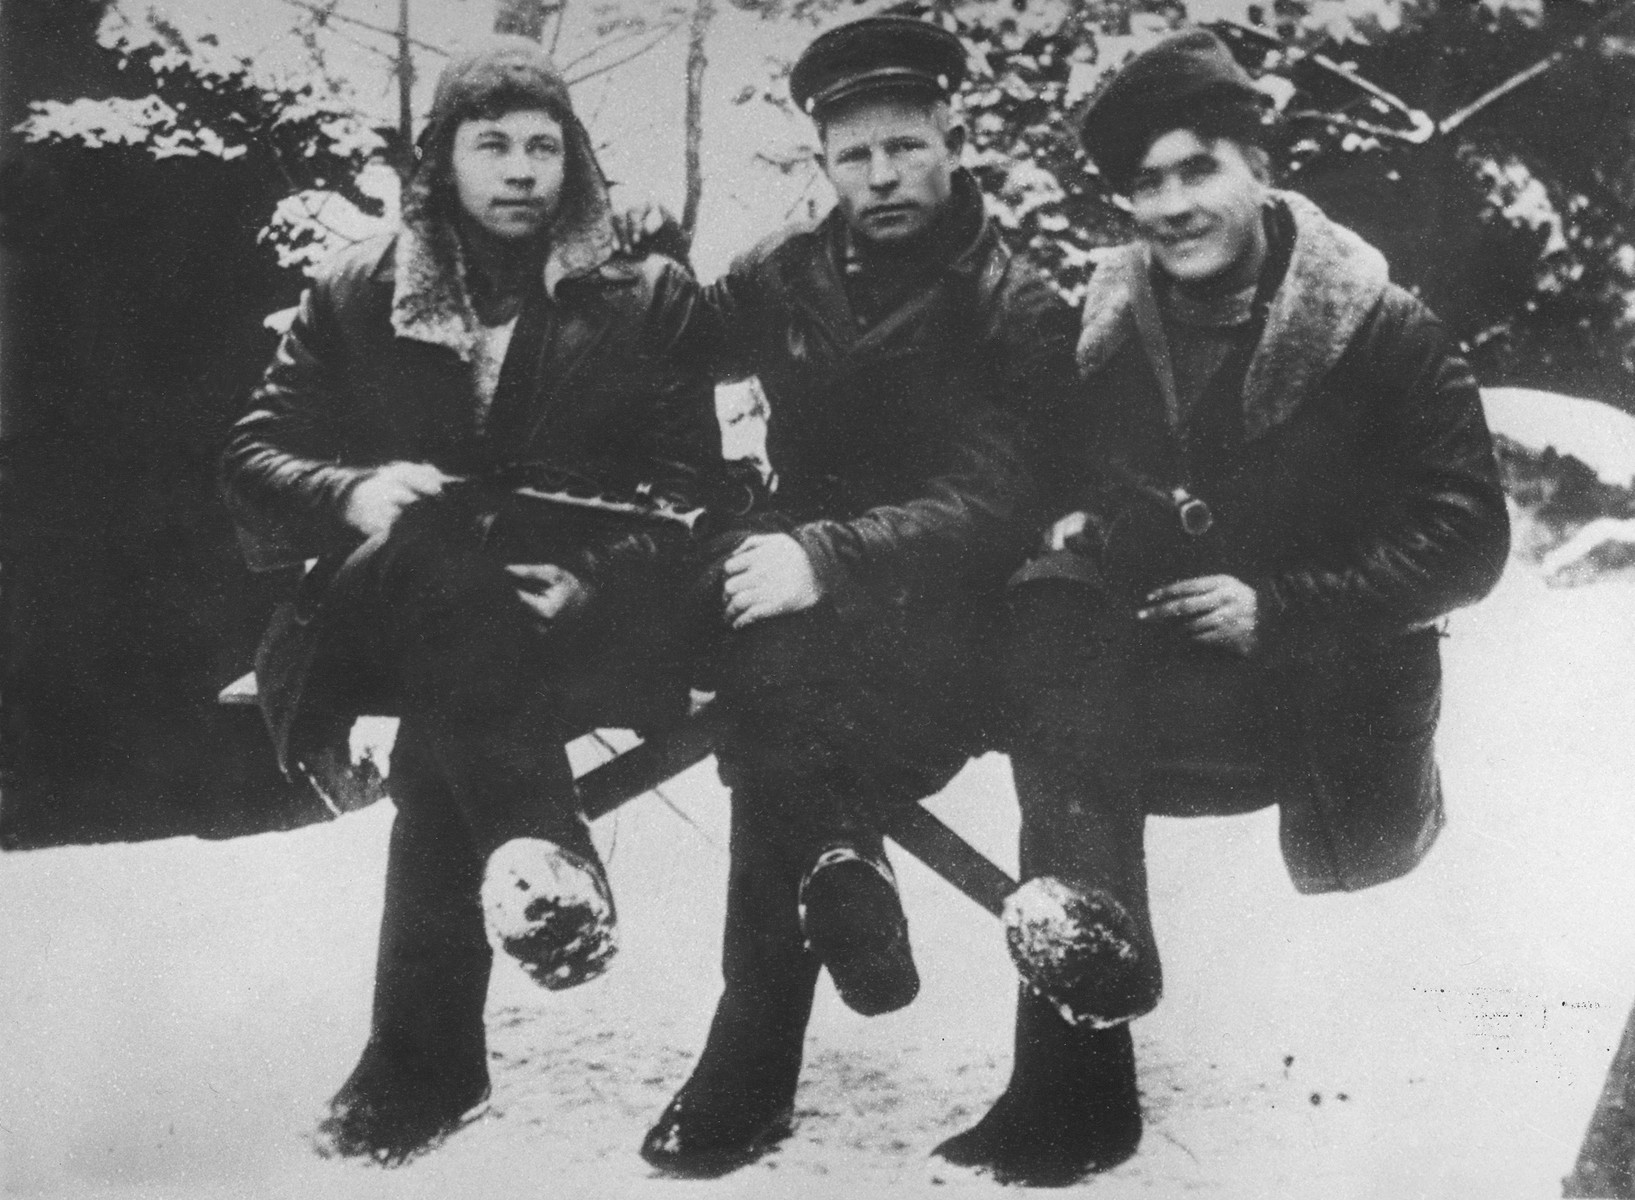 Three intelligence scouts of the Shish detachment of the Molotov partisan brigade pose outside in the snow.